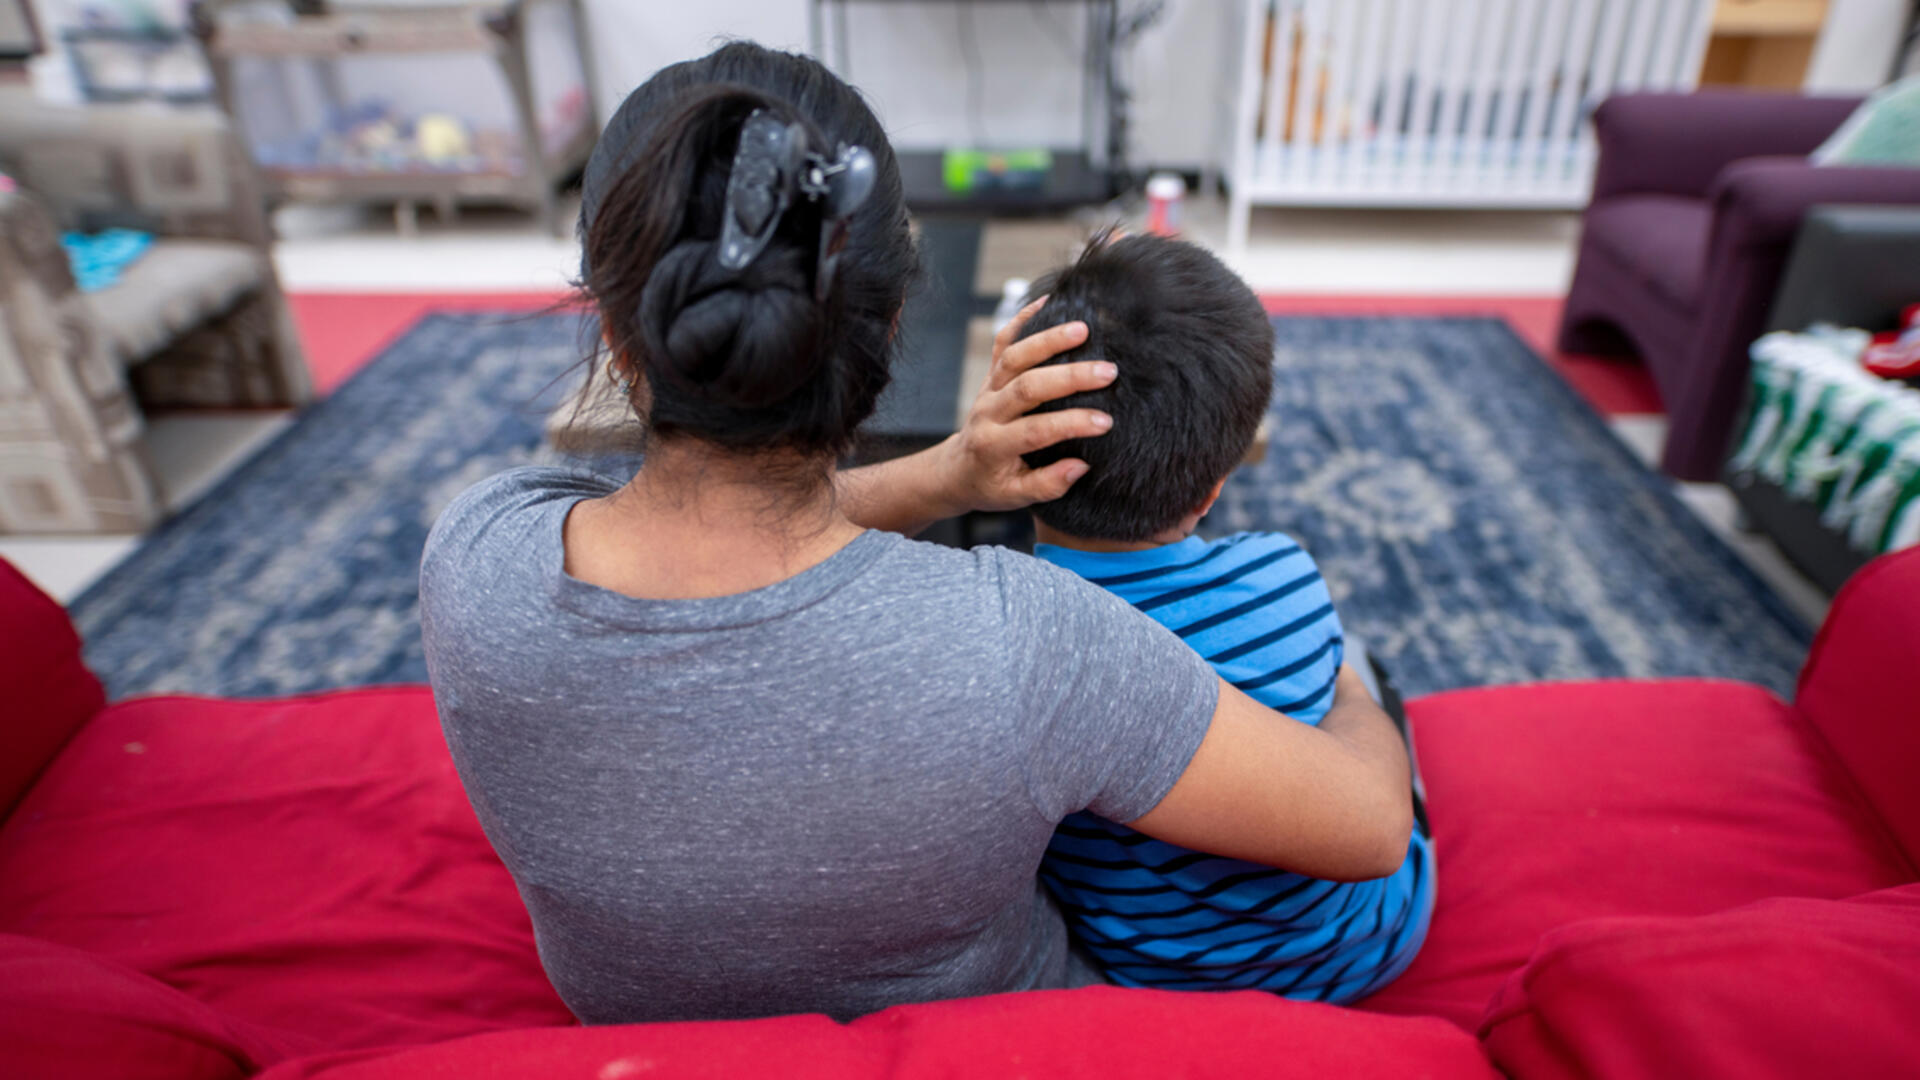 Angelina, an asylum seeker from Guatemala, sits on a red couch with her arms around her son at an IRC Welcome Center in Arizona.